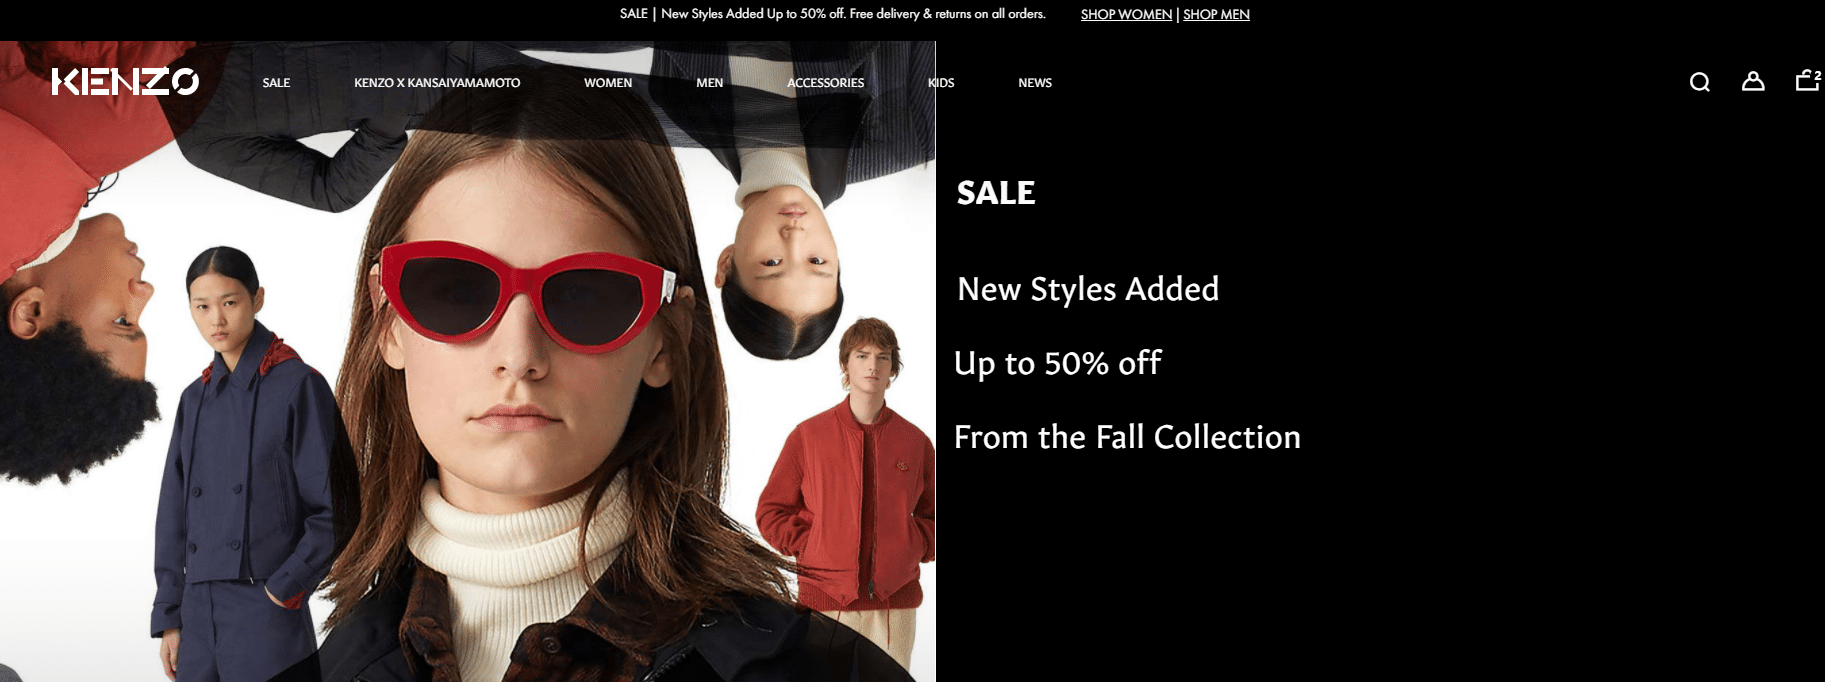 kenzo.com up to 50% off discount on fall items